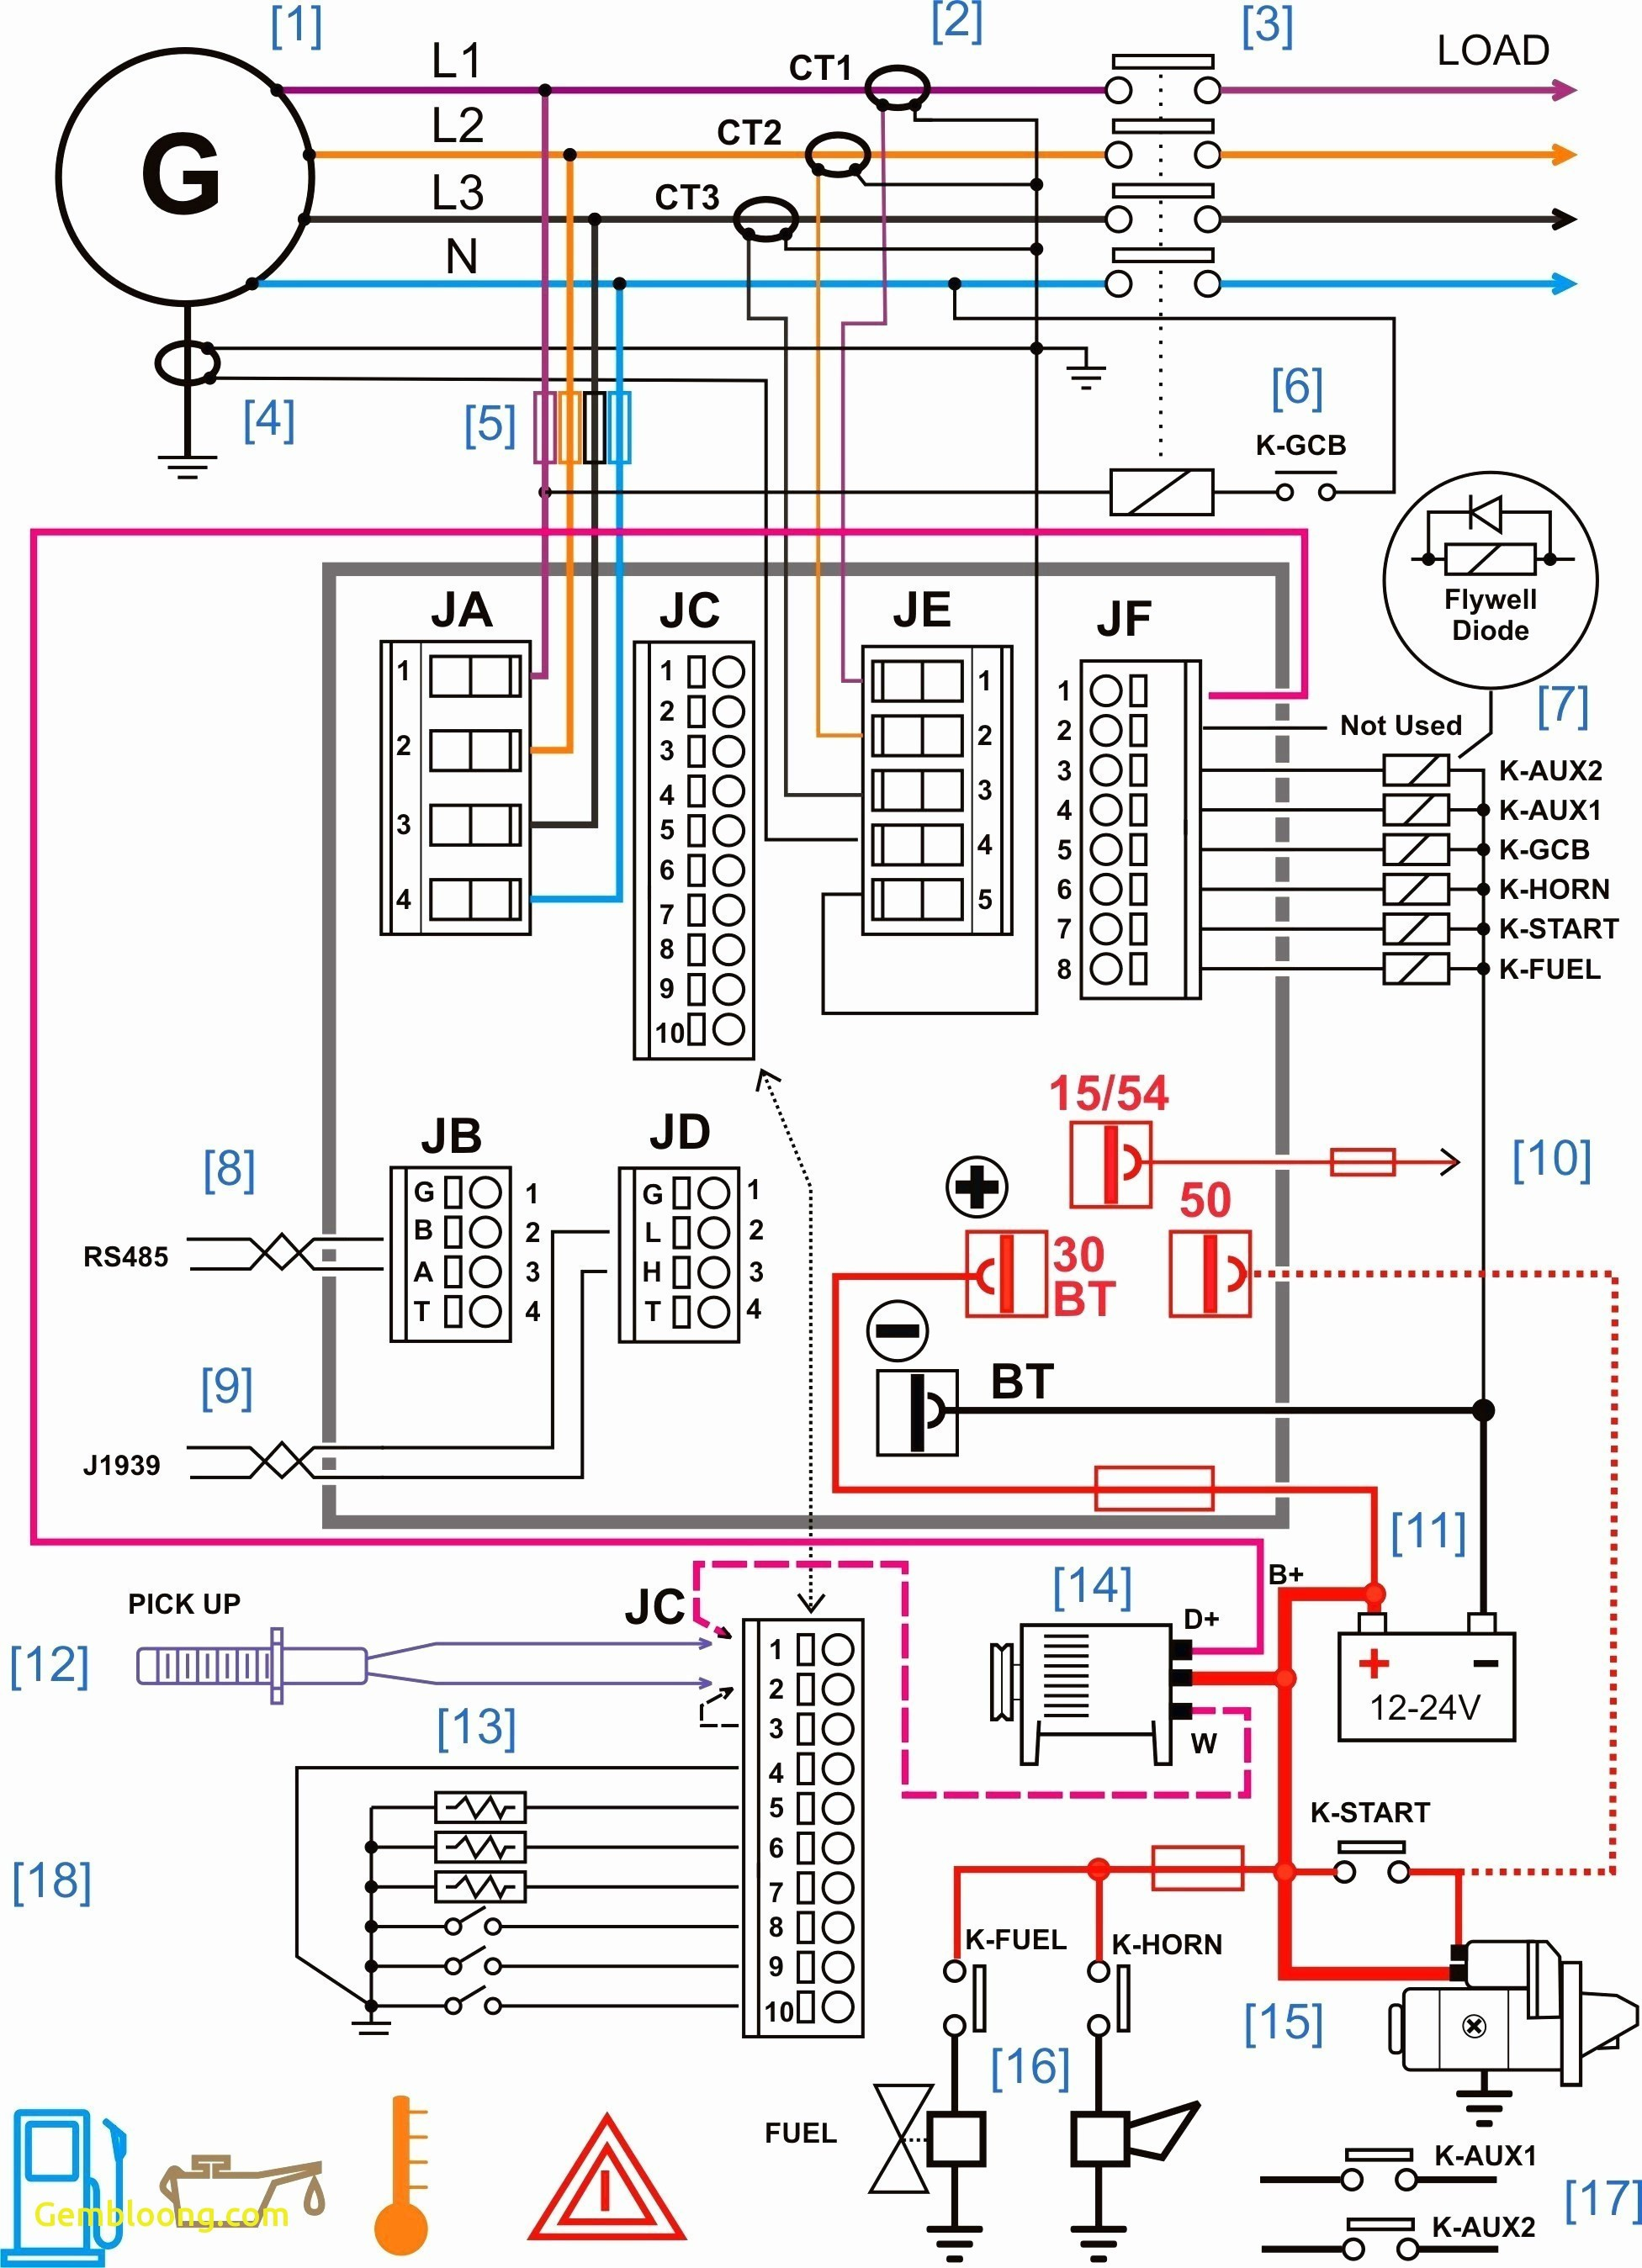 Car Alternator Diagram Wire Diagram Best Two Switch Circuit Diagram Awesome Wiring A Of Car Alternator Diagram